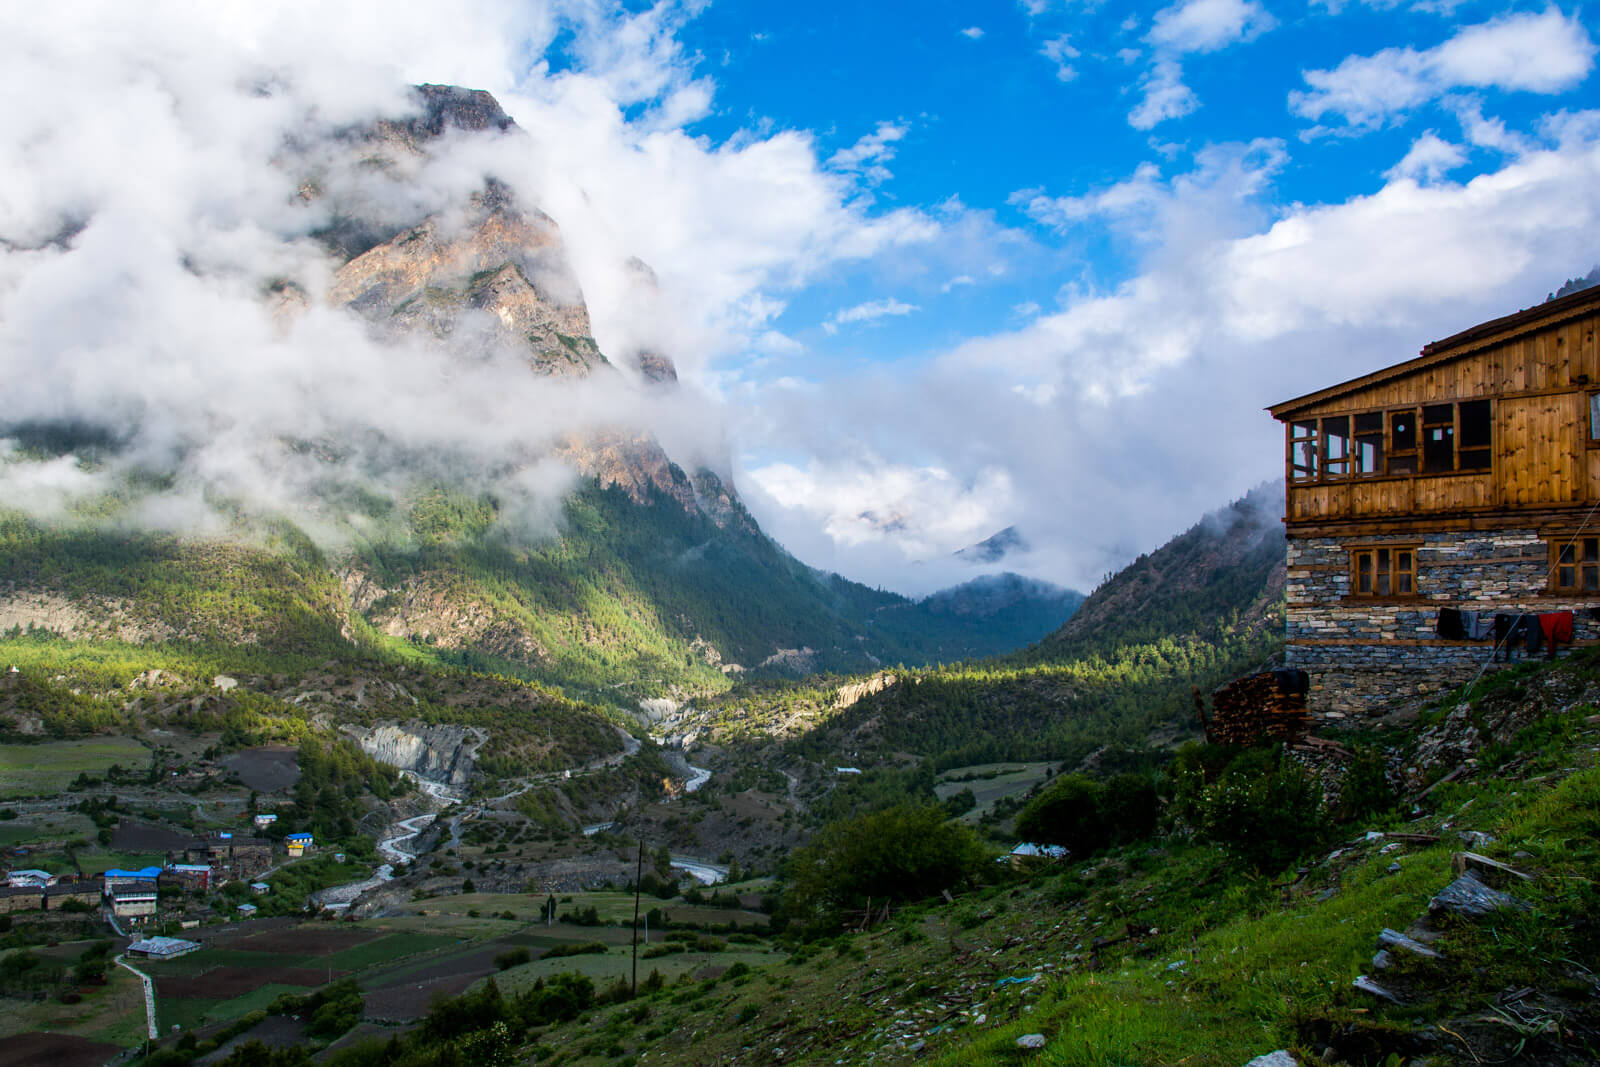 The town of Upper Pisang, would you like to sleep in one of these tea houses during the Annapurna Circuit Trek?